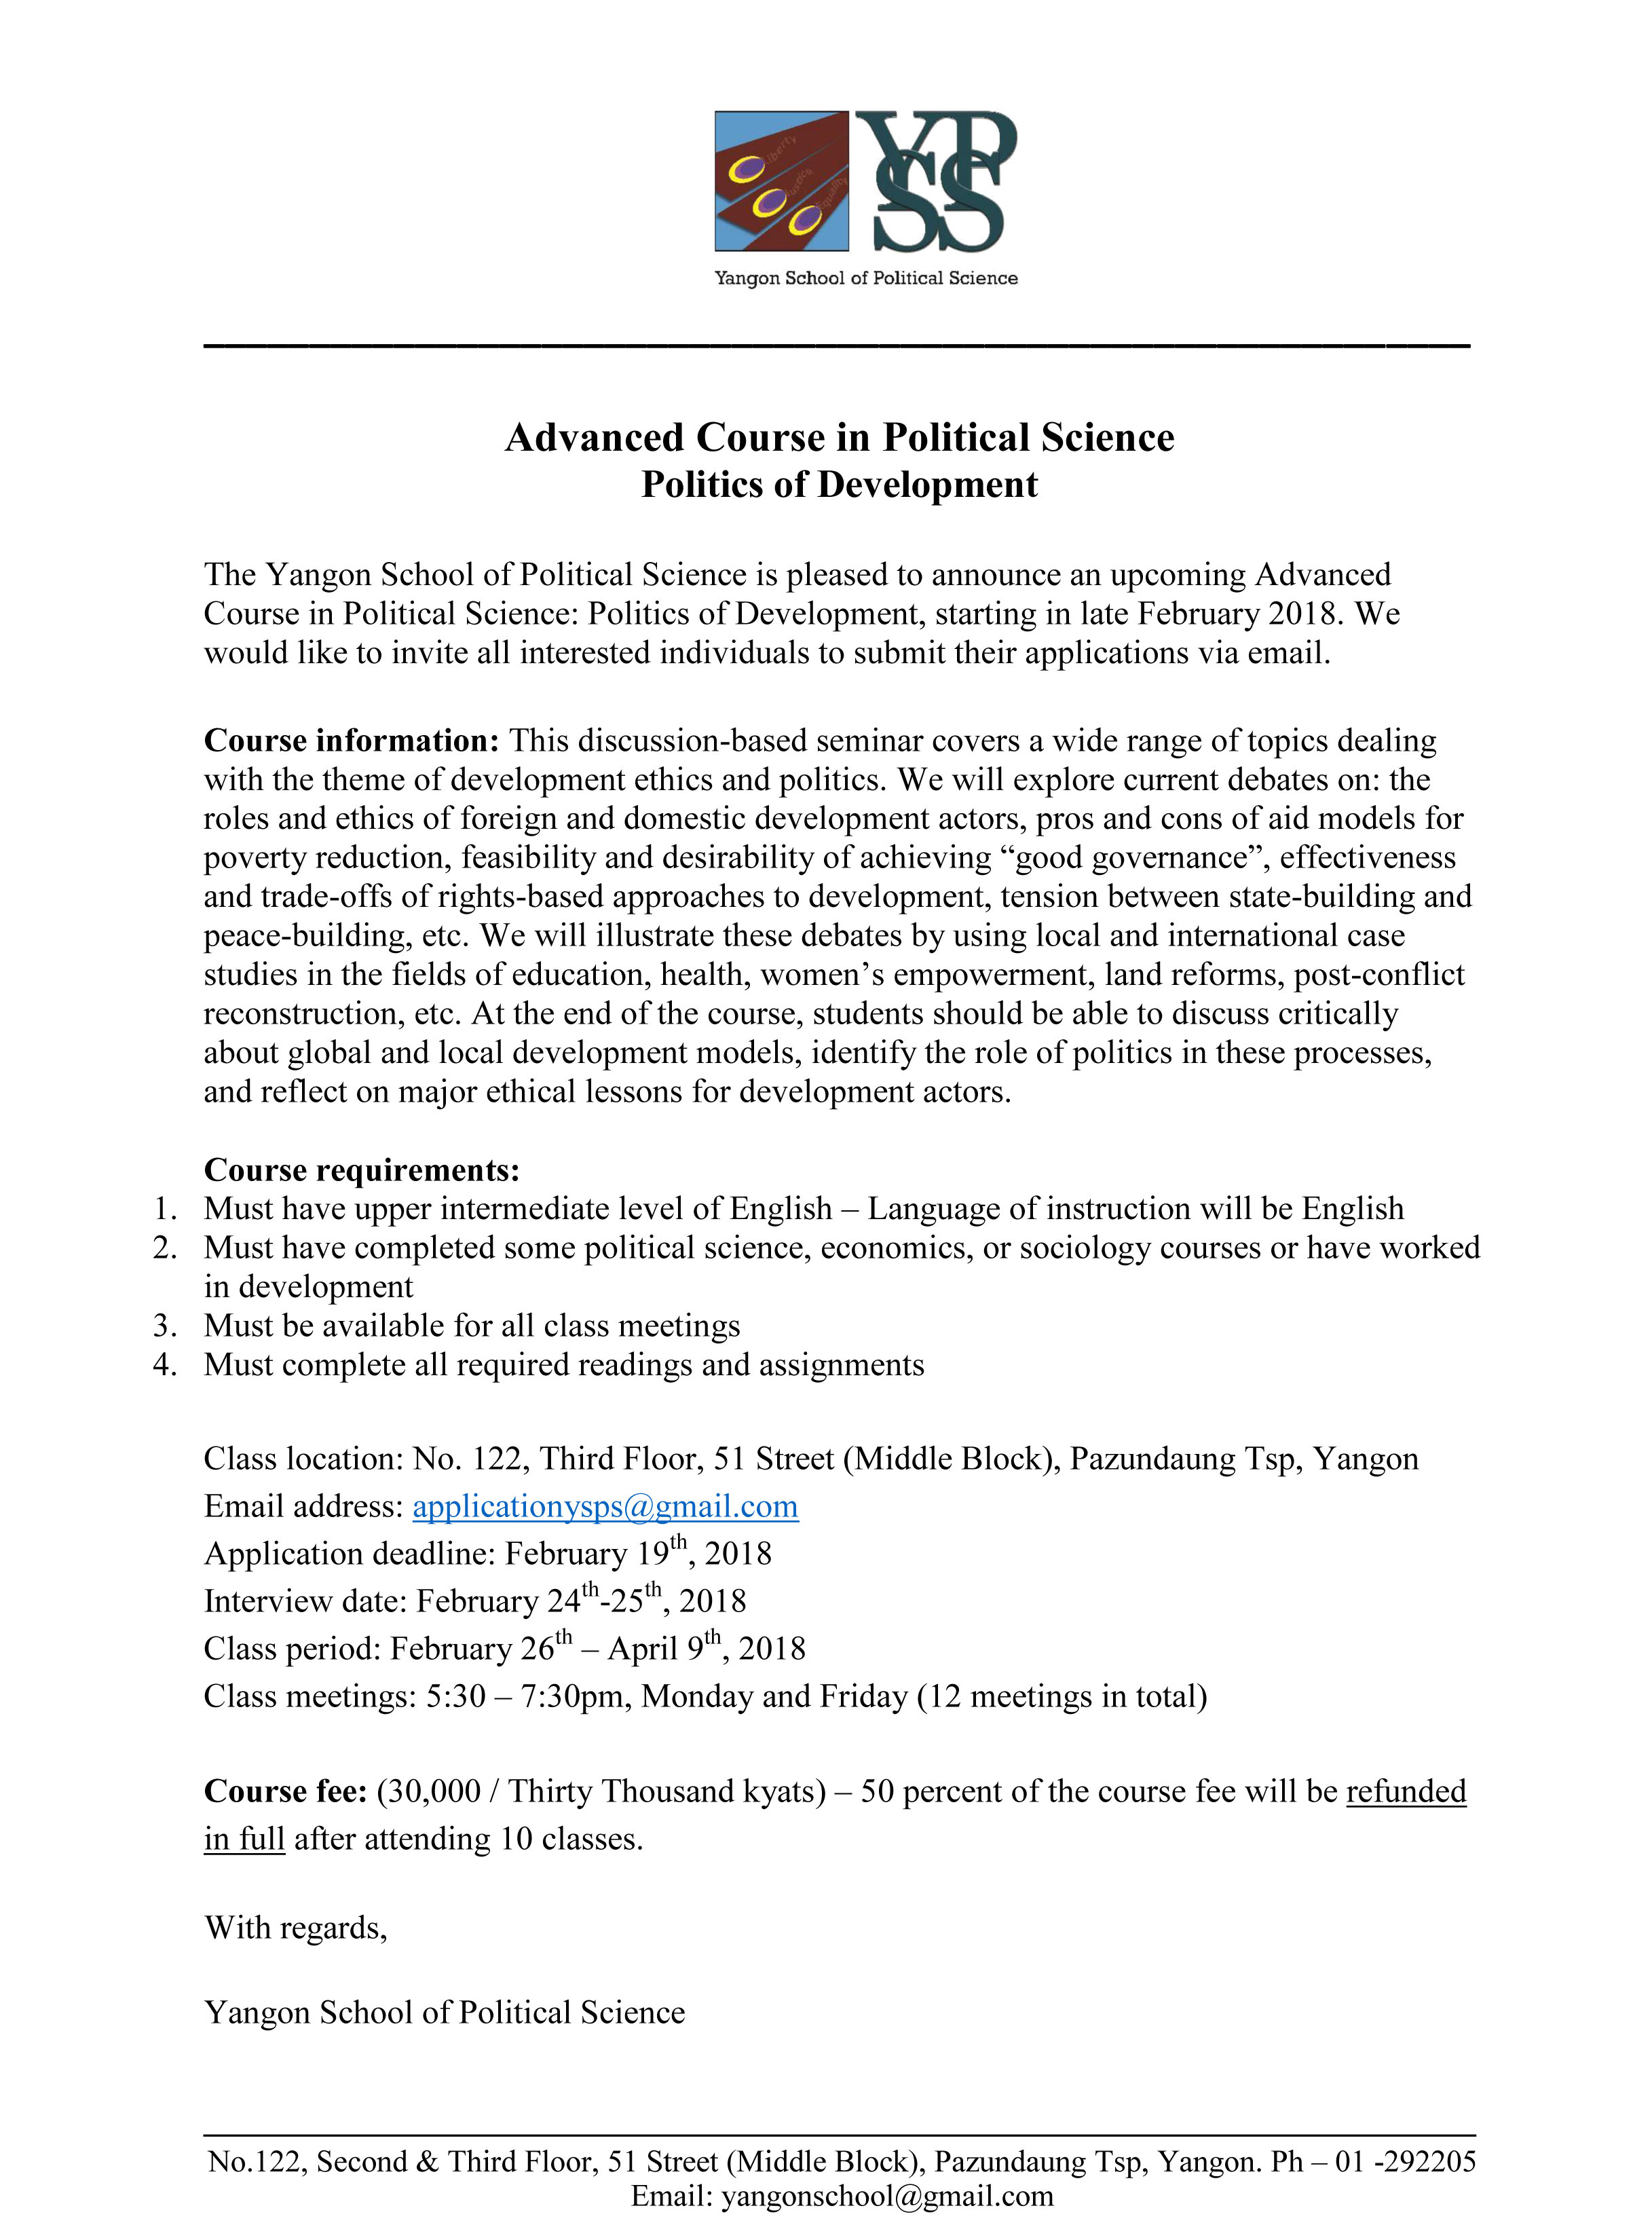 Advanced Course in Political Science: Politics of Development